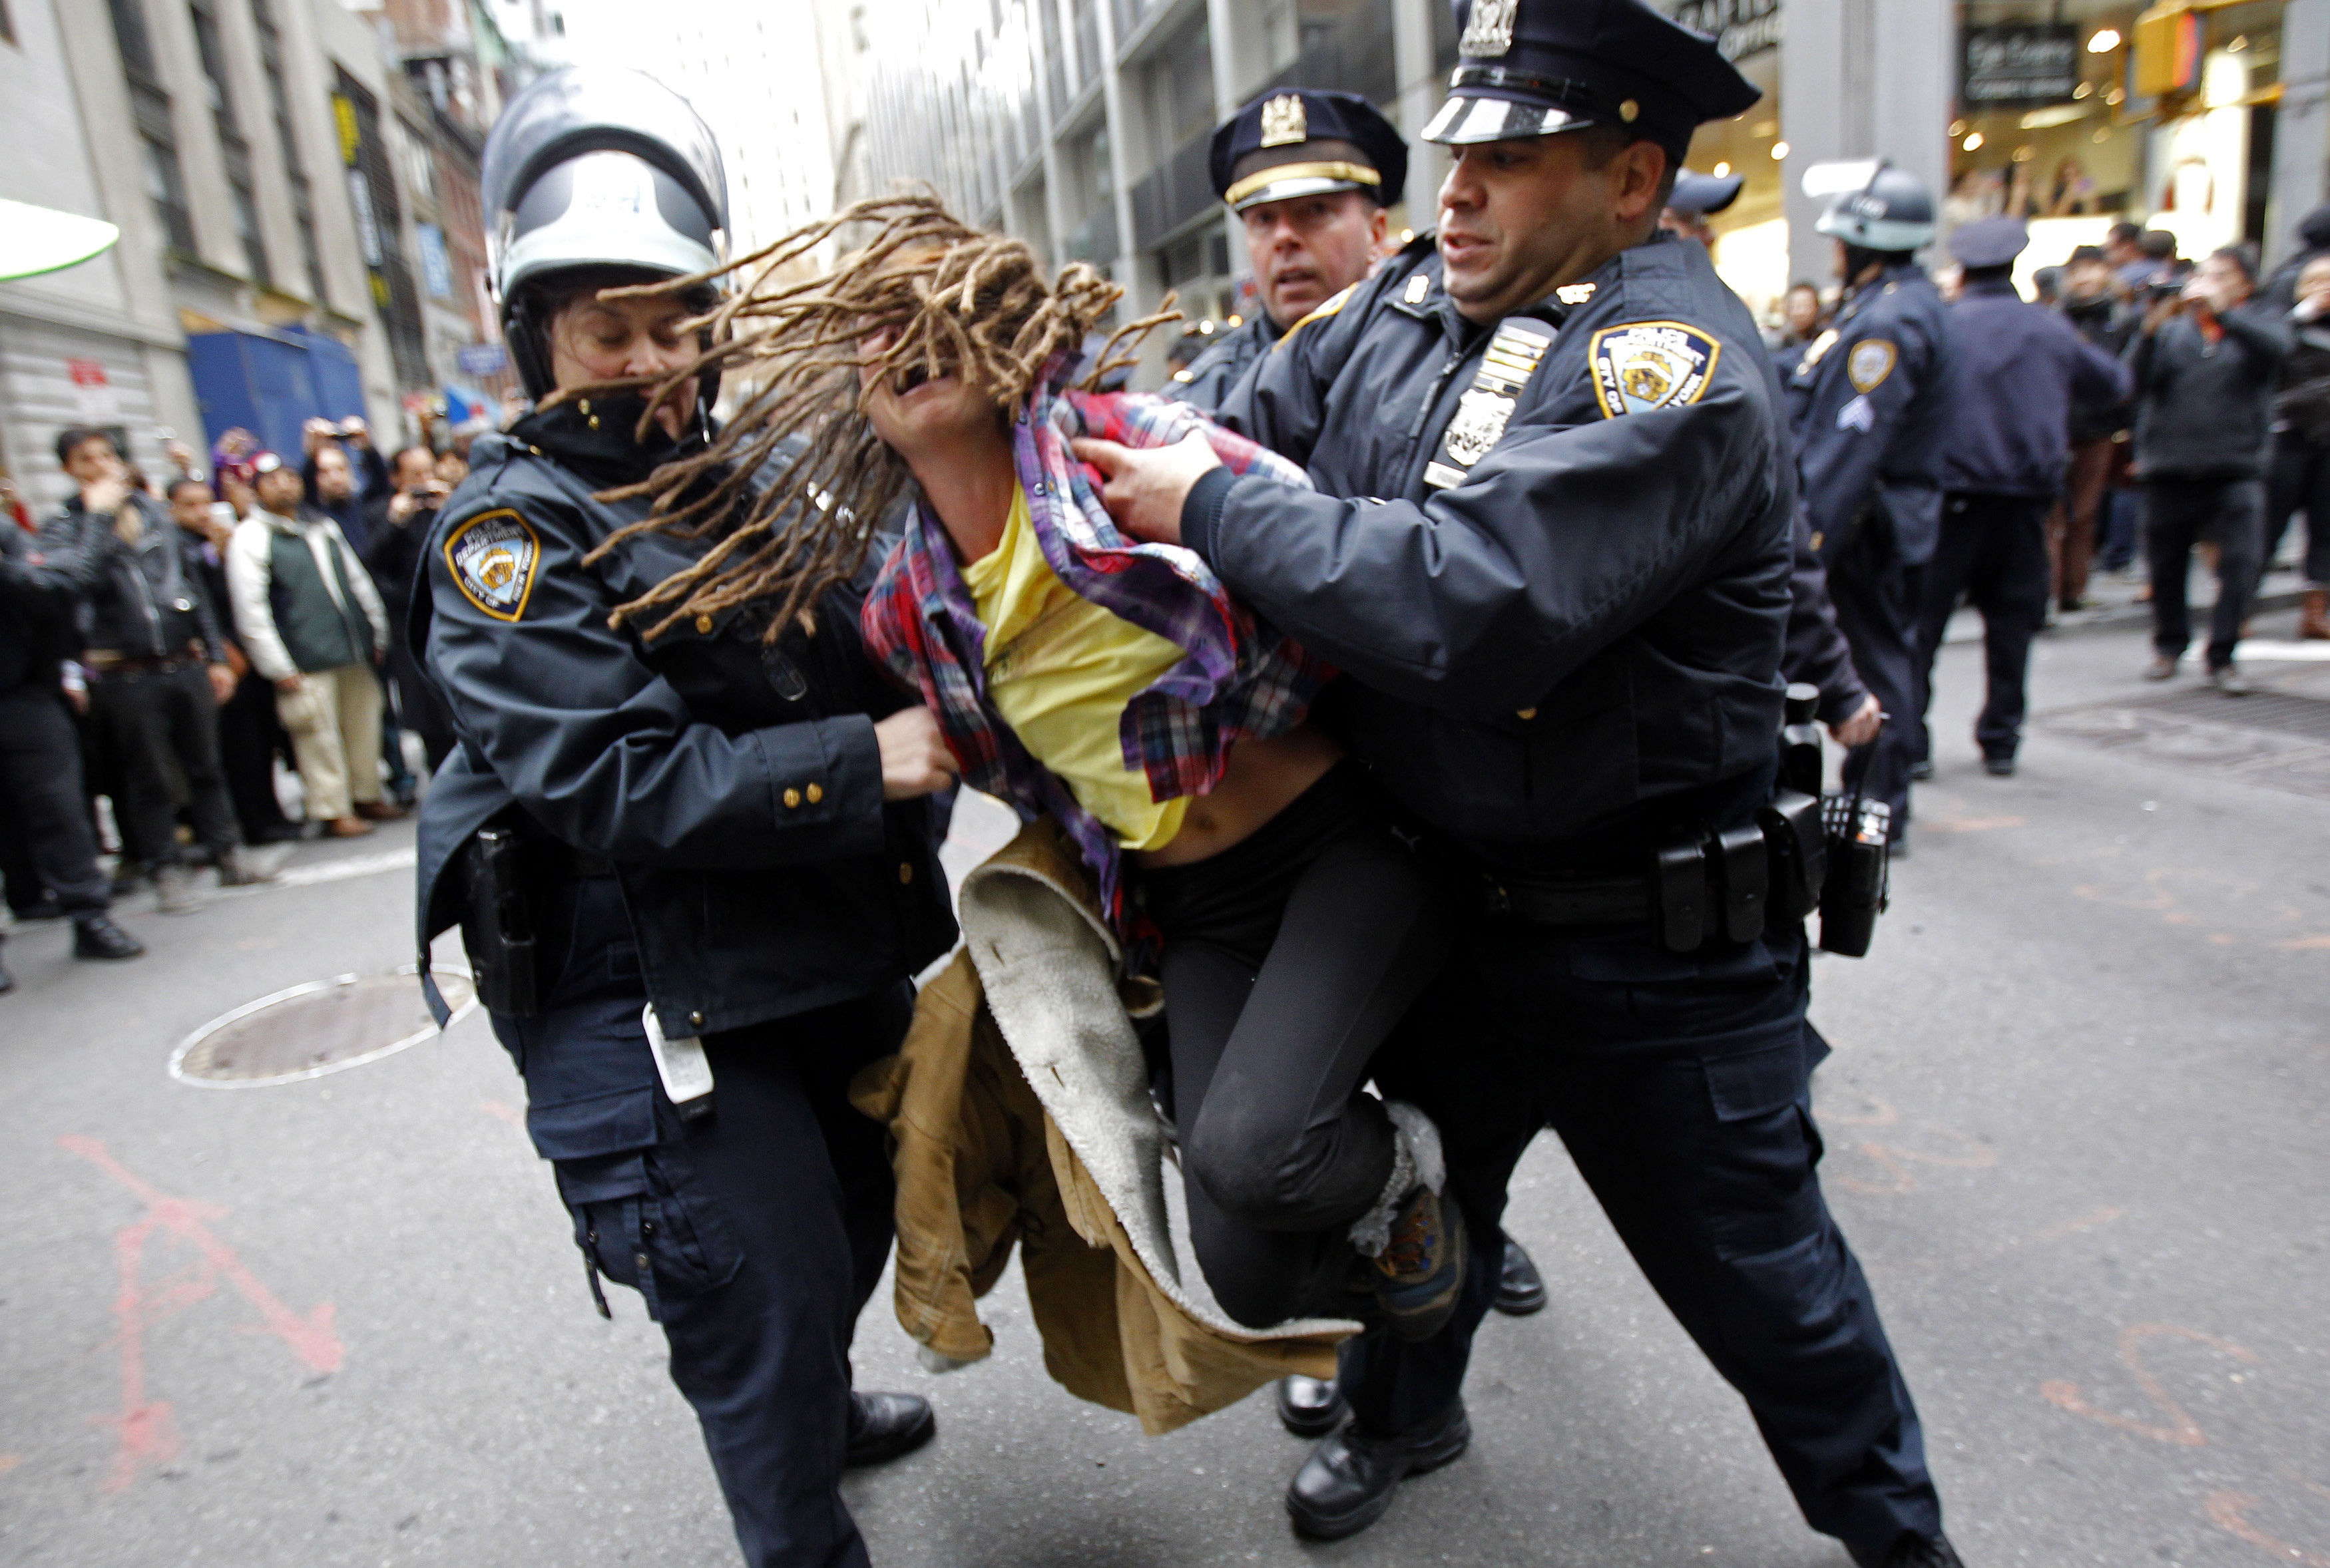 "An Occupy Wall Street demonstrator is arrested by New York City Police during what protest organizers called a ""Day of Action"" in New York November 17, 2011. Hundreds of Occupy Wall Street protesters marched through New York's financial district toward the stock exchange on Thursday to protest economic inequality at the heart of American capitalism. REUTERS/Mike Segar (UNITED STATES - Tags: BUSINESS CIVIL UNREST TPX IMAGES OF THE DAY) - GM1E7BH1RU601"